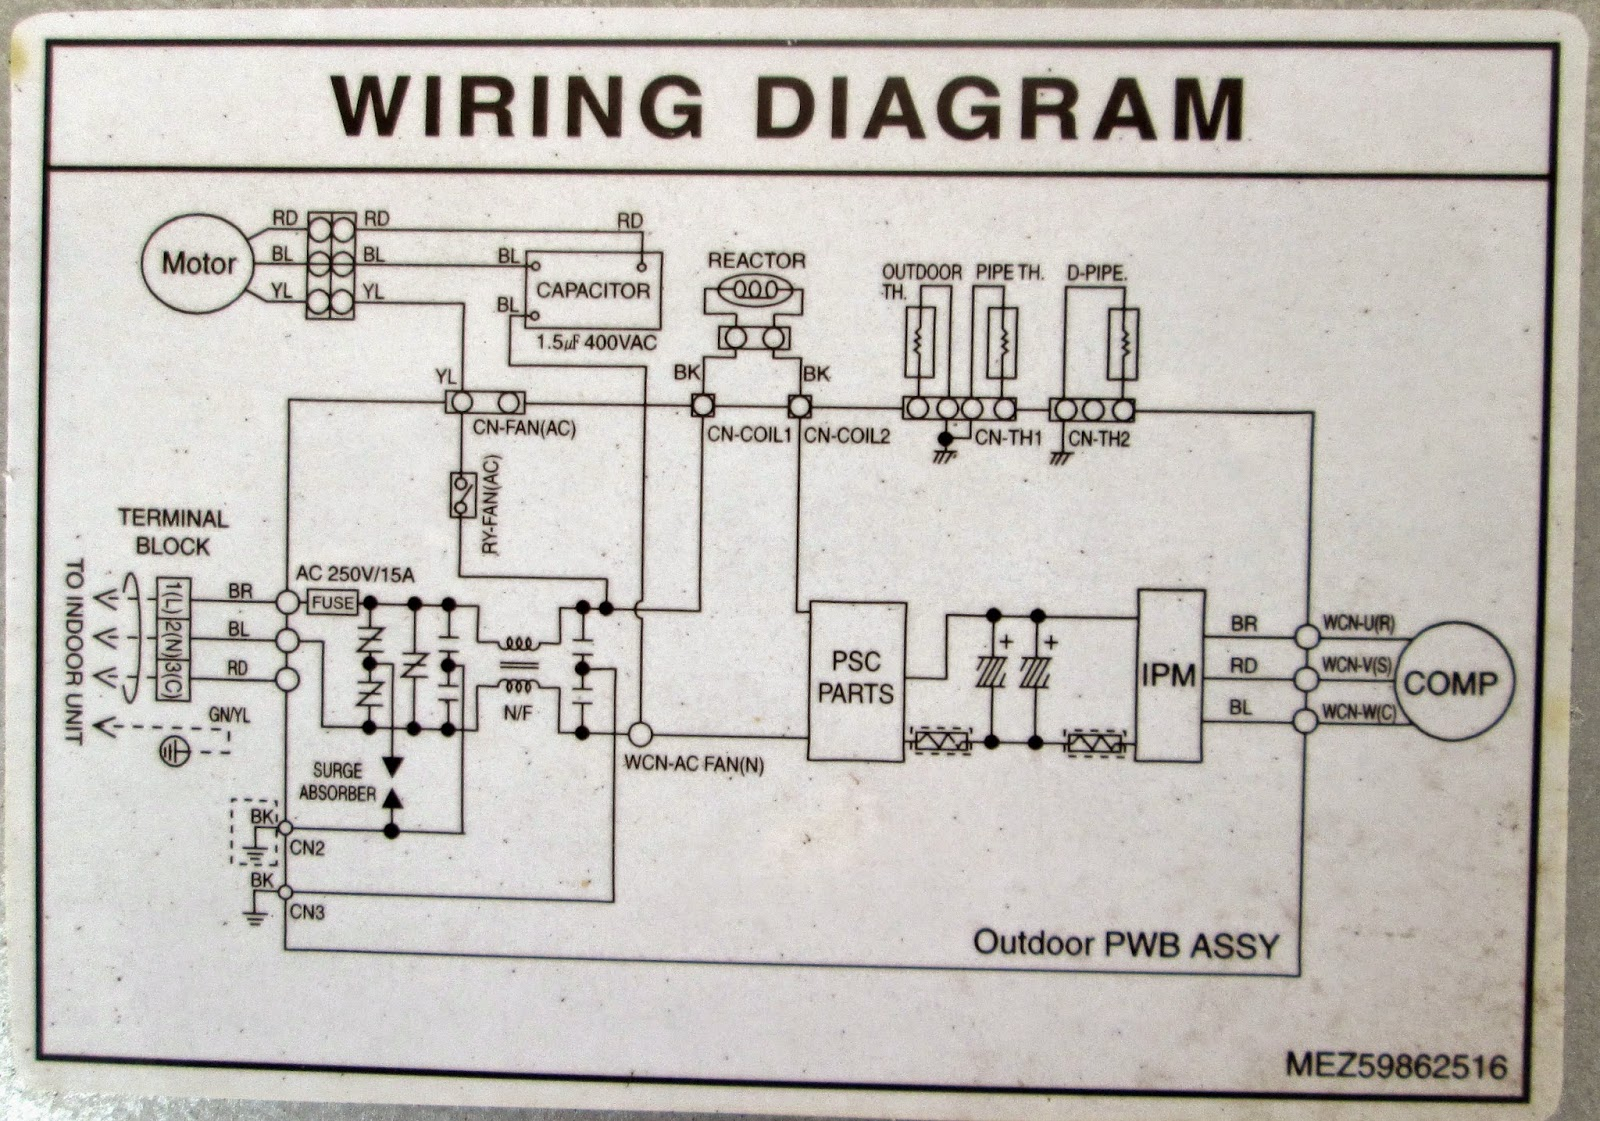 WD%2Bsharp%2Binverter%2B2 28 [ inverter aircon wiring diagram ] electrical wiring lg ac wiring diagram at readyjetset.co